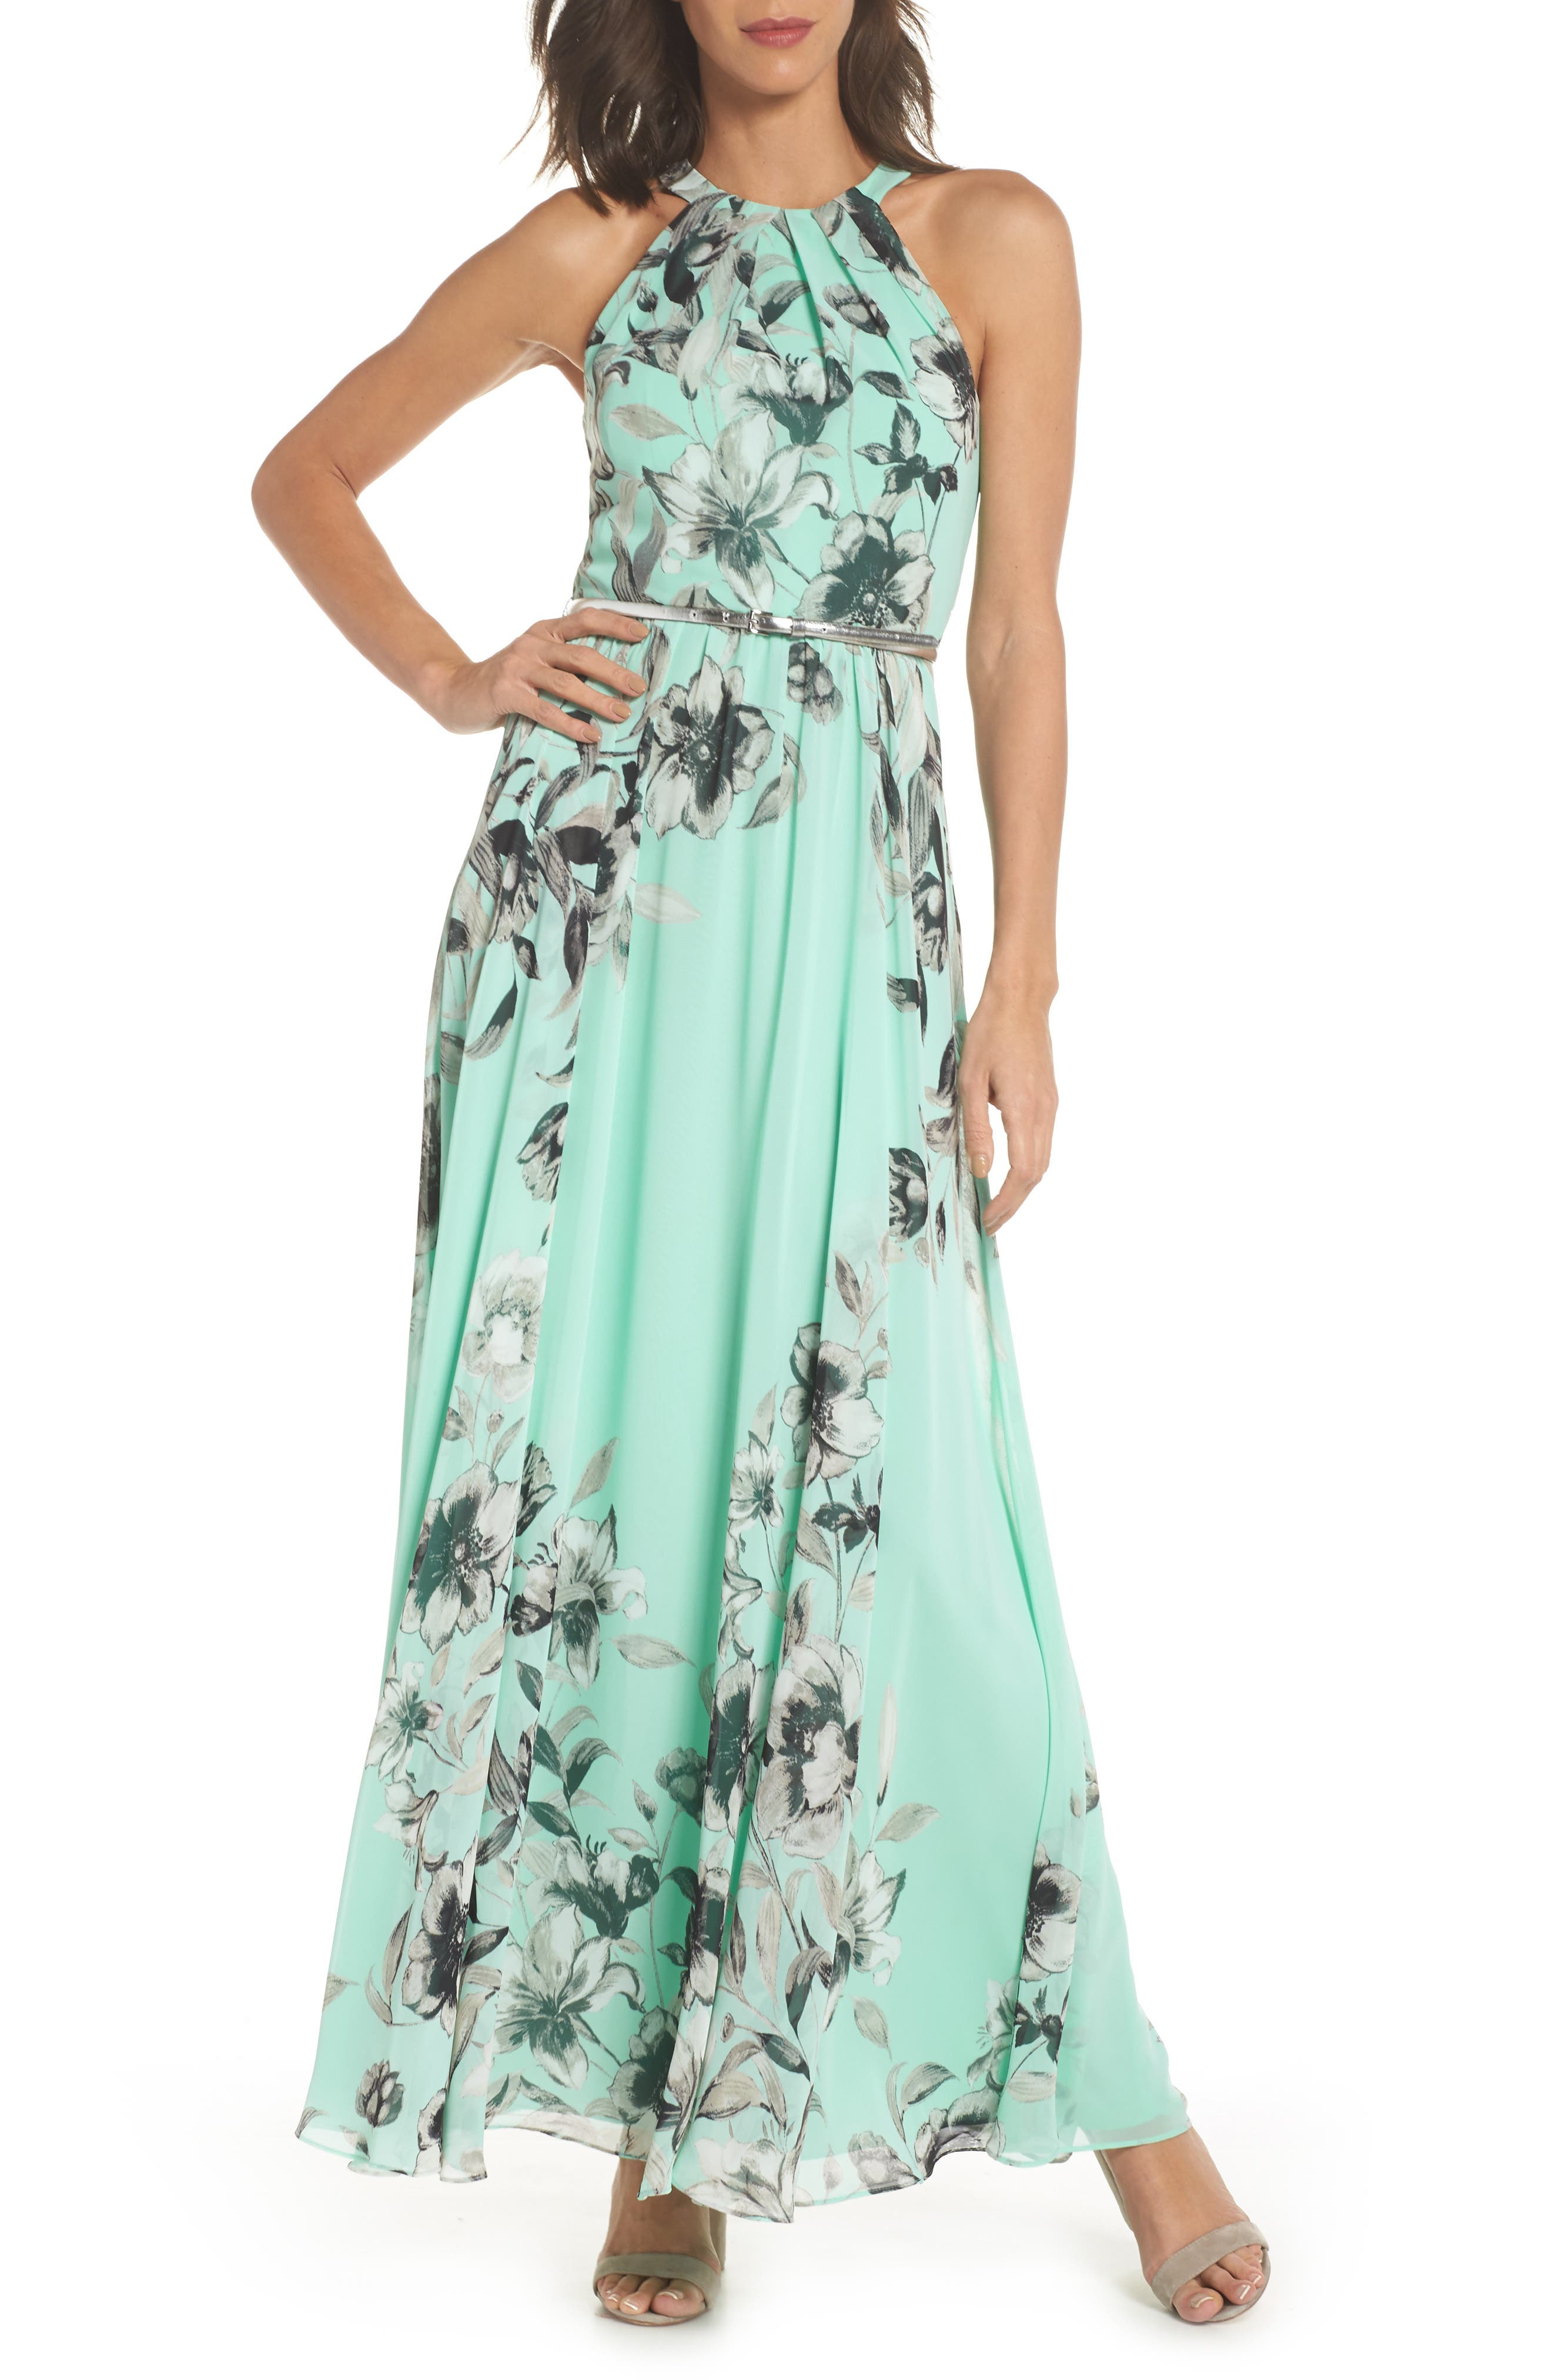 Belted Chiffon Maxi Dress,                             Main thumbnail 1, color,                             MINT